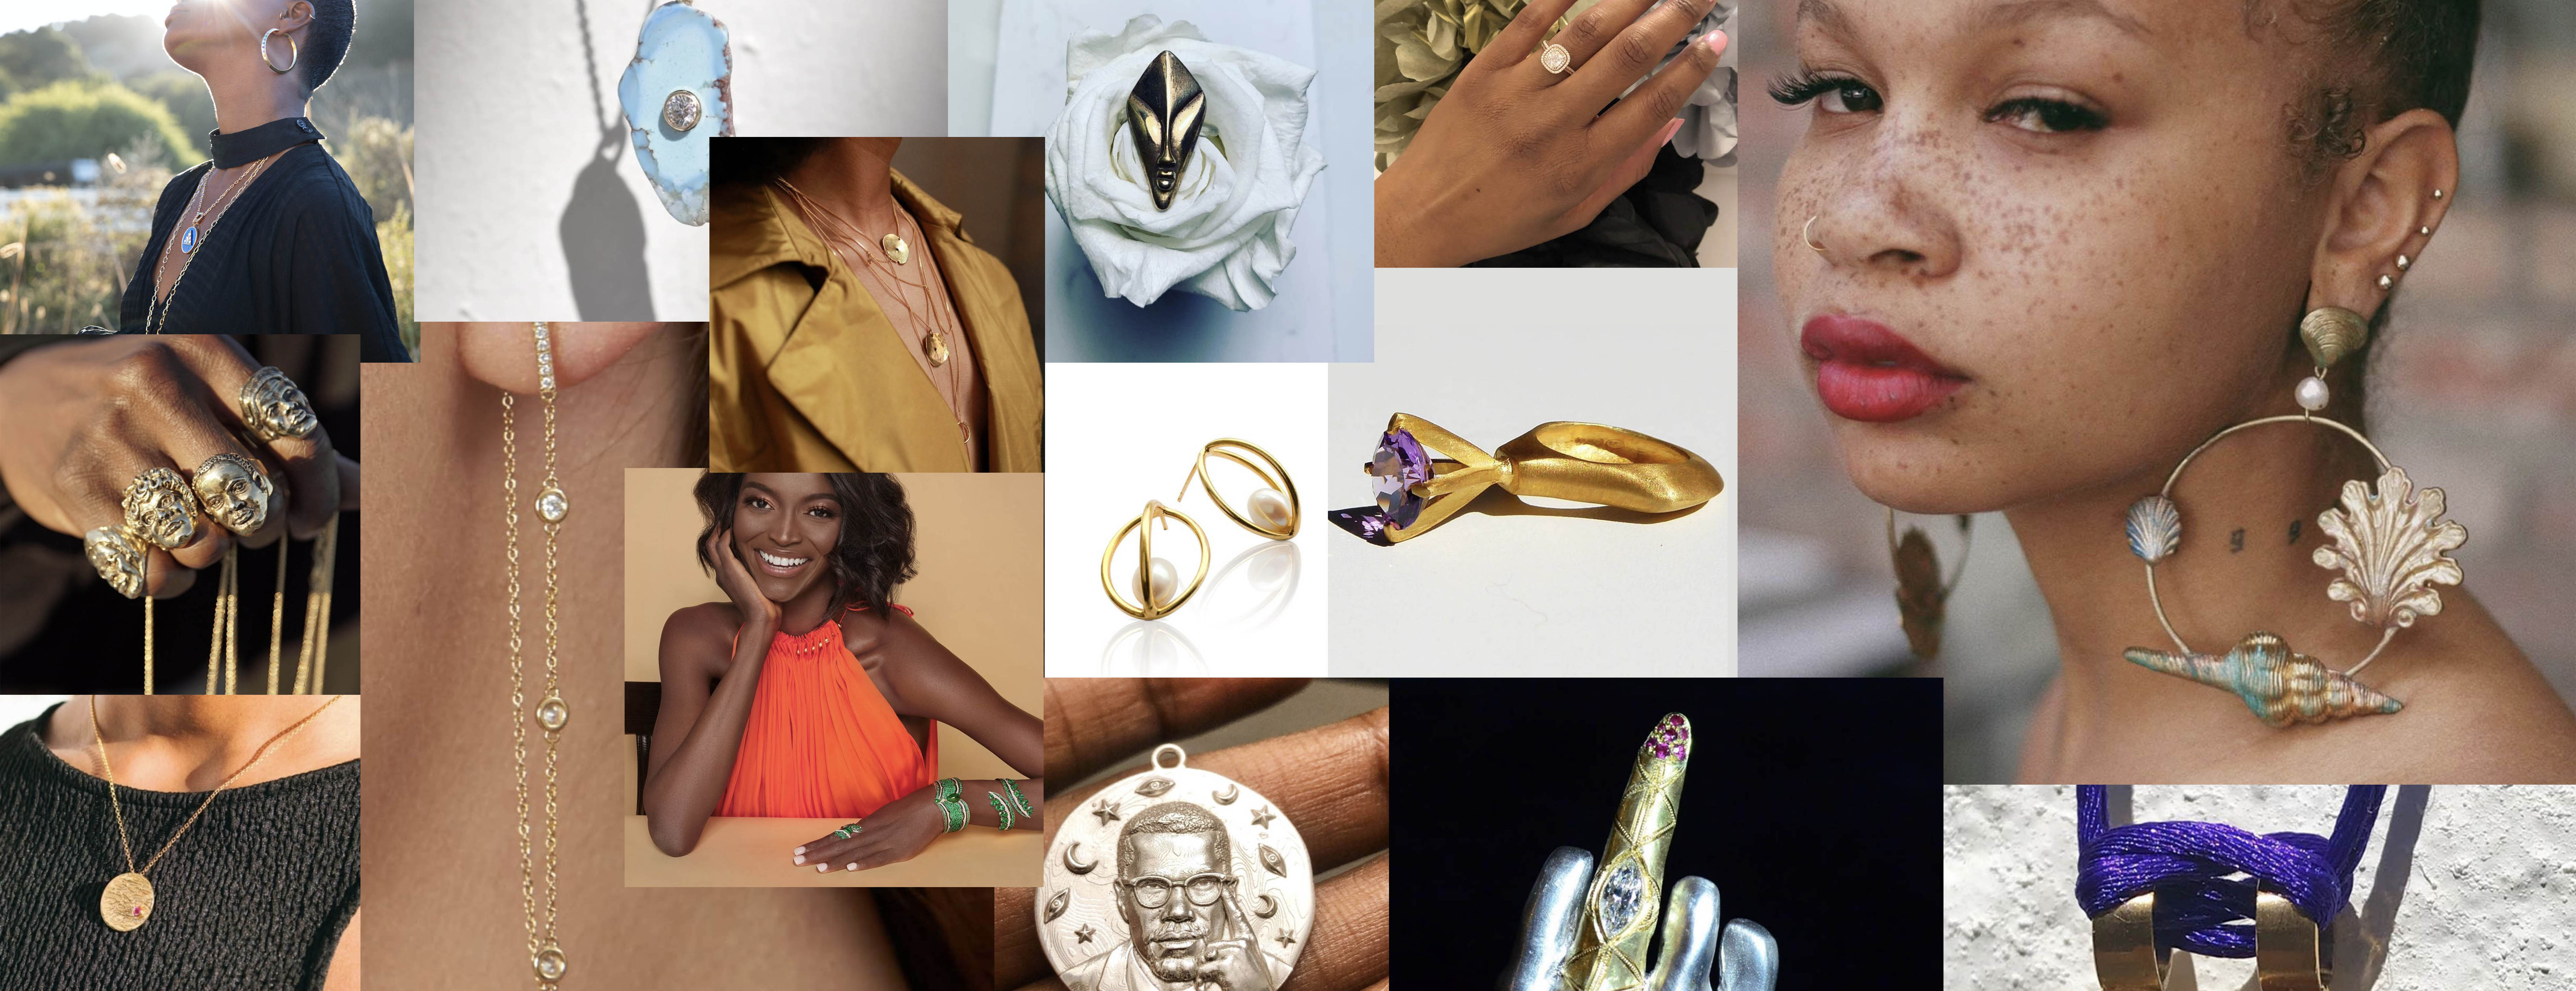 Blackjewellersmatter Designers To Support Listen To And Champion The Jewellery Cut